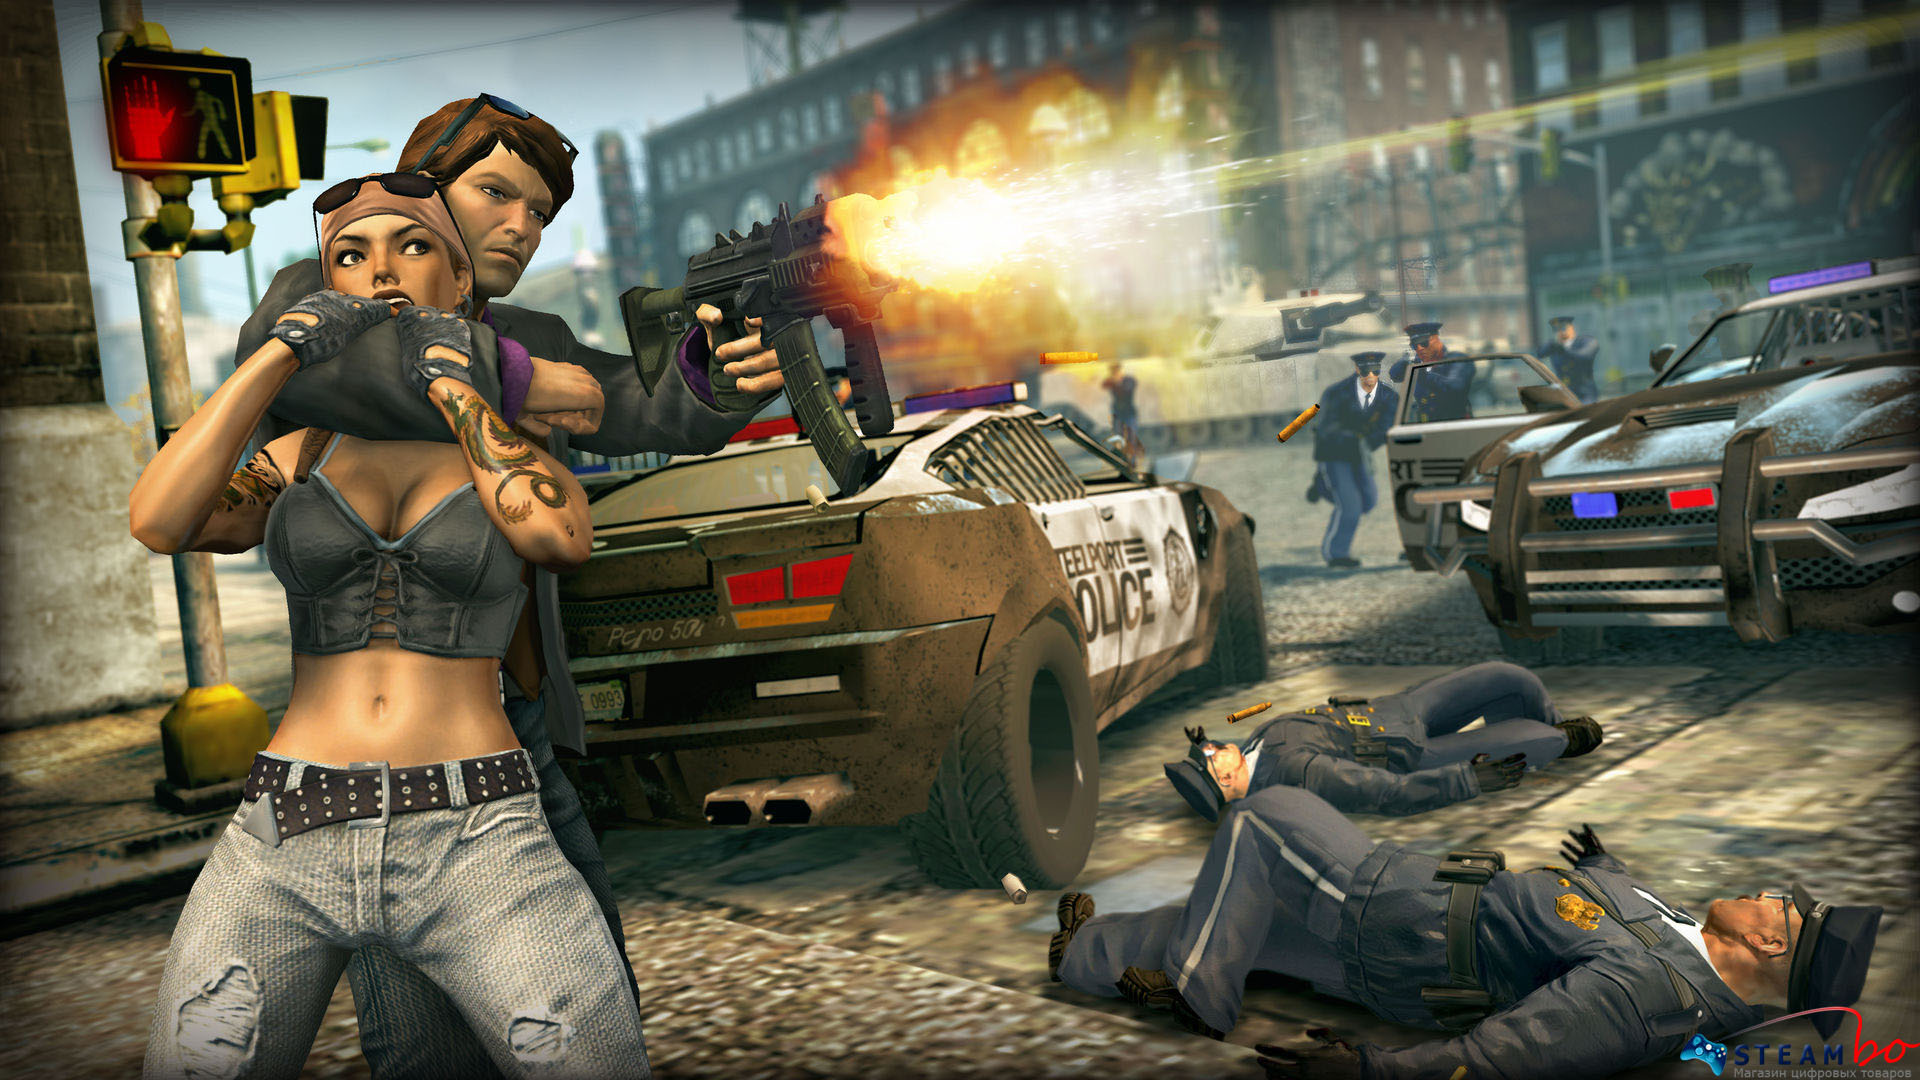 Saints Row The Third Region Free (Steam Gift/Key)